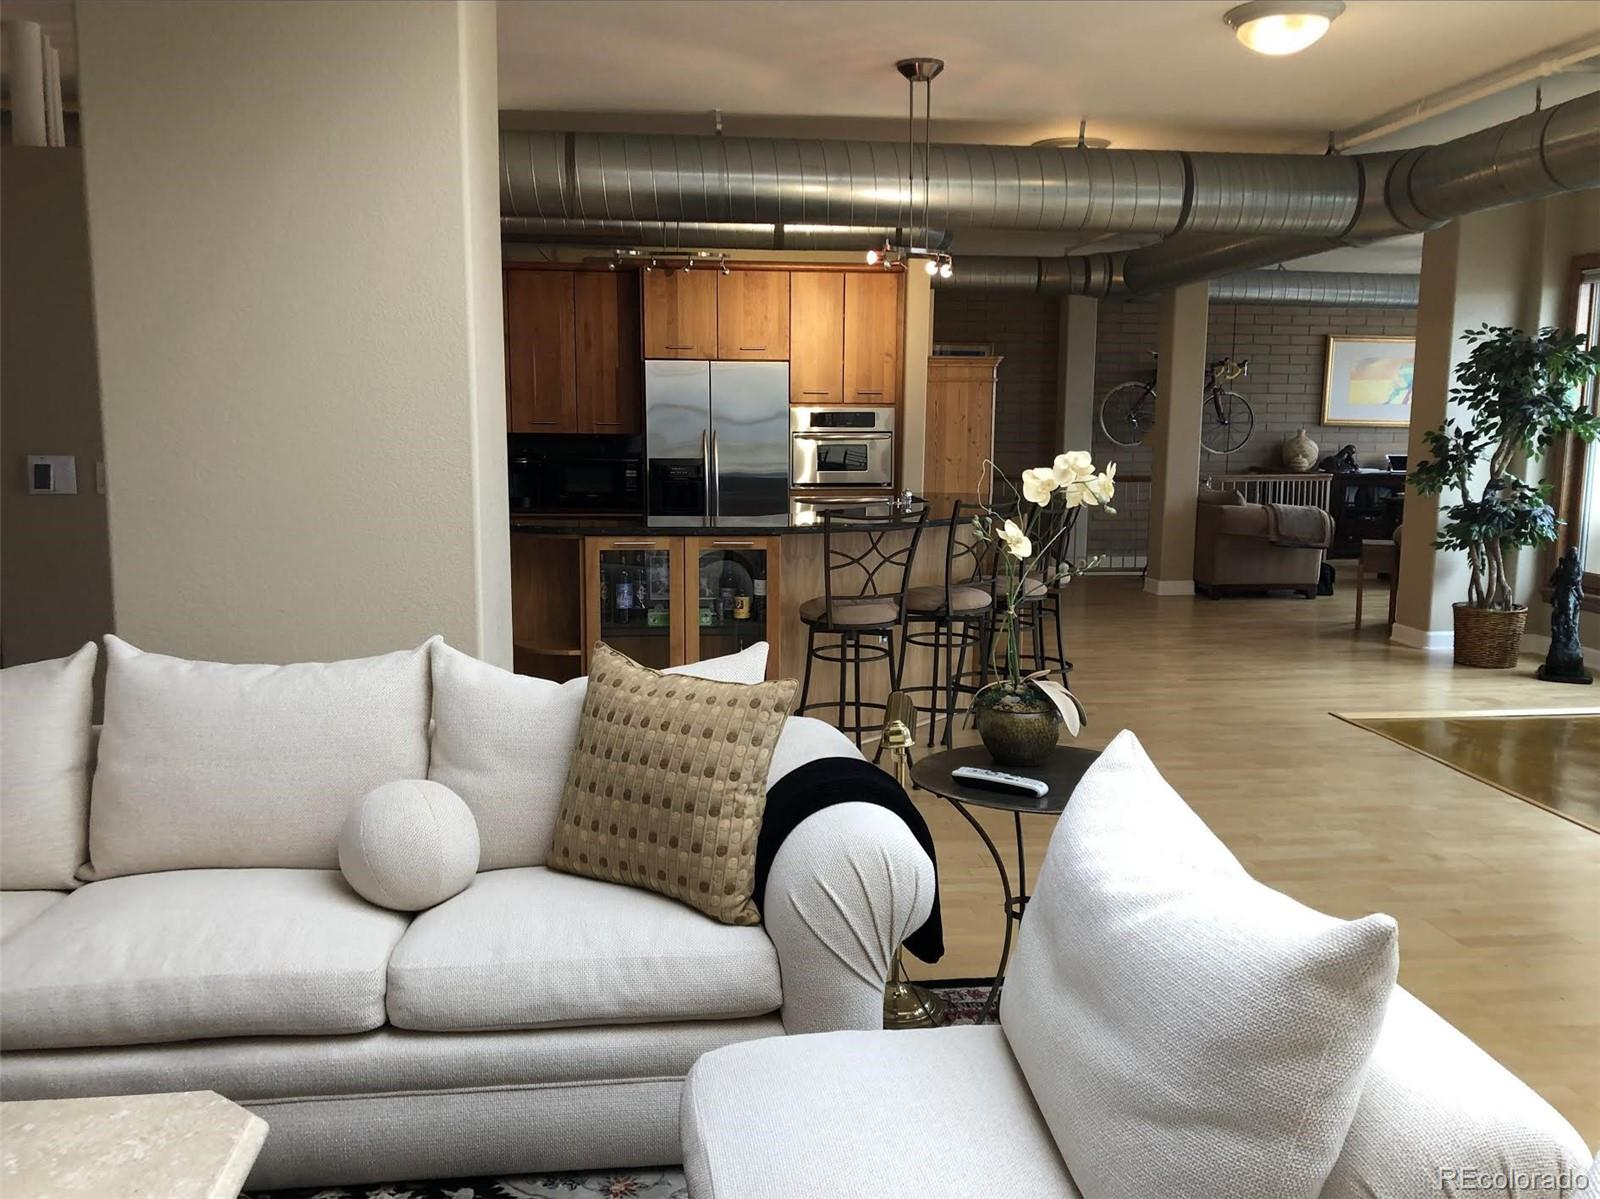 """This exclusive residential loft is unlike anything else that currently exists in Downtown Denver. The owners  spent years renovating both Penthouse units and a 3rd adjacent unit to individually occupy the top two floors of the building which is located next to Coors Field. If you desire a lot of open space, this is one of the largest residential lofts in Downtown Denver at nearly 7000 square feet. The loft has multiple entrances on multiple levels. There are 3 outdoor decks - 2 of which are west facing with unobstructed views of the mountains and Coors Field and the 3rd deck runs the entire length of the building with facing the downtown area. The open floor plan with two full master suites is flexible and enough to configure into as many bedrooms as desired. The loft boasts 7 bathrooms - 6 full baths and one half bath, 3 steam showers and 3 Jacuzzi tubs. There are 2 full gourmet kitchens, multiple entertaining bars, and 2 fireplaces. You will enjoy complete privacy with no upstairs or adjacent neighbors. The unique architectural design allows for the ability to close off areas allowing them to be completely self-sustaining and soundproof to function as a guest house or """"mother-in-law"""" residence with separate entrances, bathrooms, kitchen, and other wireless systems. The loft has a full security system with multiple interior and exterior cameras, off-site camera footage storage and a fully concealed safe room integrated into the system. 4 parking spots are yours and also an option for high-demand hangar space at Centennial Airport for personal aircrafts. The loft will be sold fully furnished including baby grand Disklavier piano. In order to protect the privacy of the current owners, as well as the privacy of the exclusive buyer, limited photos will be publicly posted, but additional photos and videos, and in-person or virtual showings may be arranged after receipt of a Proof of Funds (POF) Letter and/or a Prequalification Letter to the current owners."""